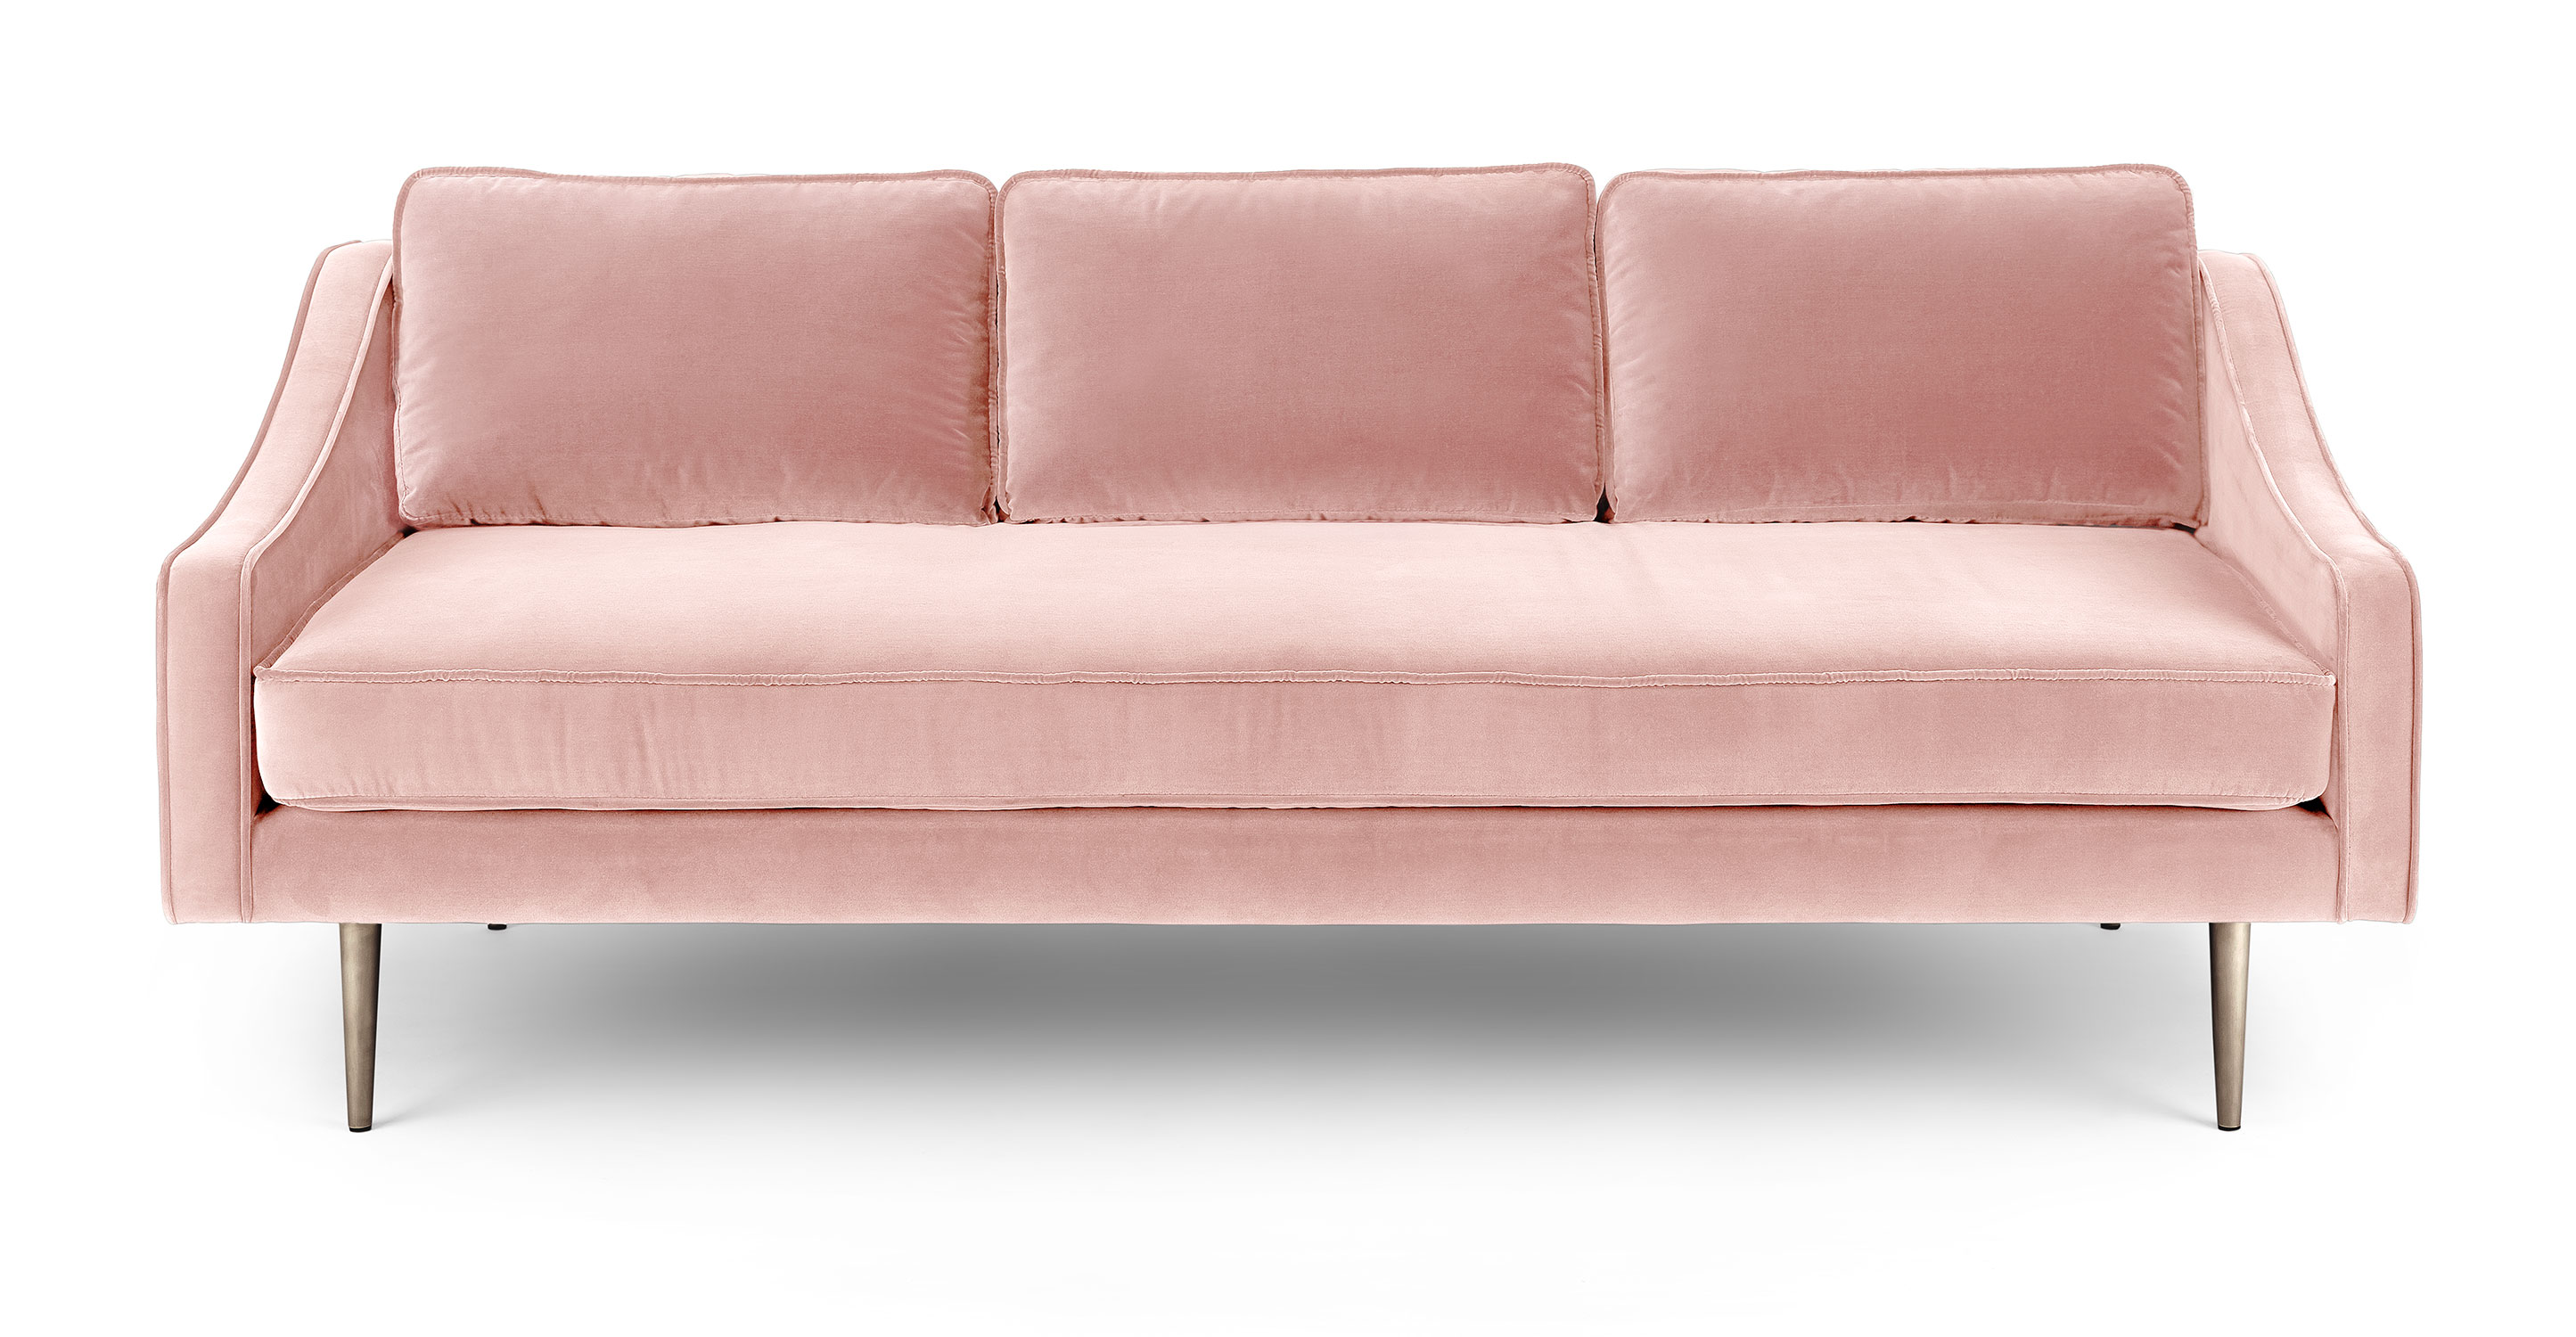 pink sofa promotion code